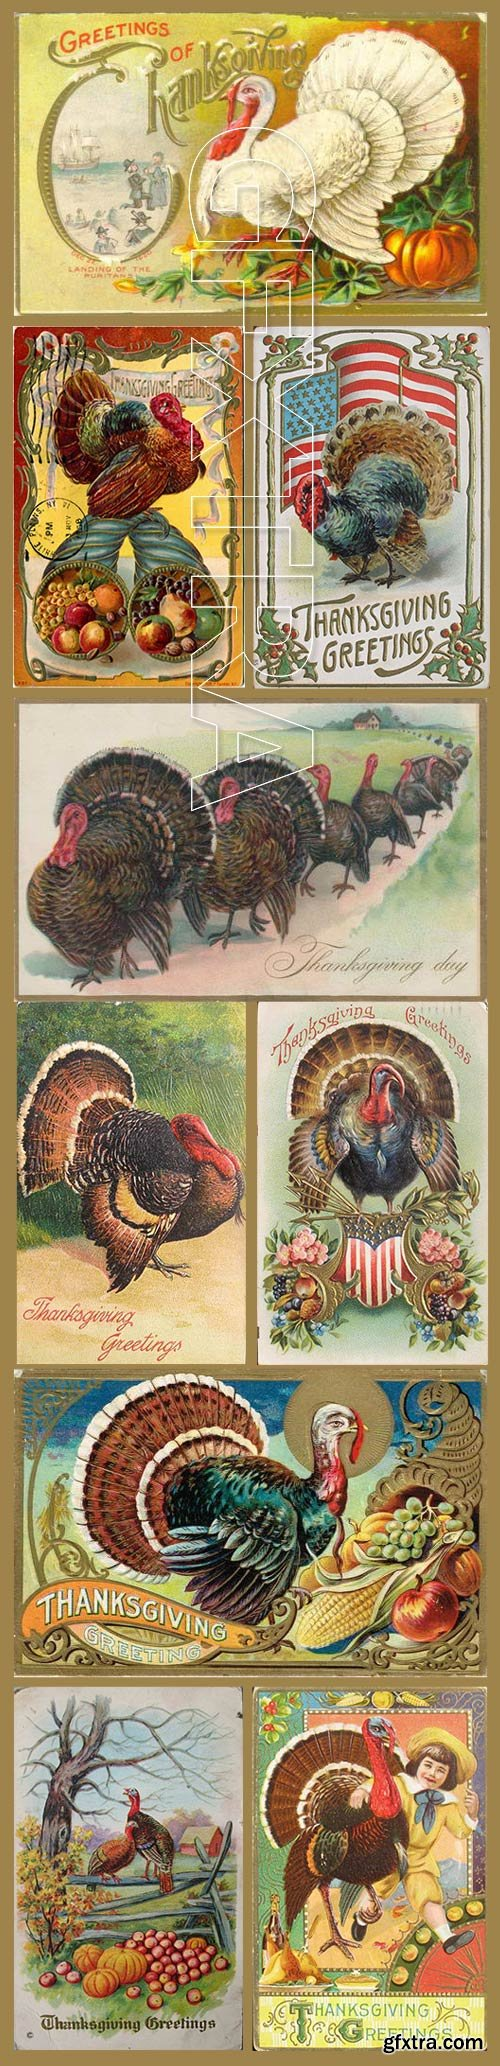 Vintage ThanksGiving Day Postcards Collection 193xJPG